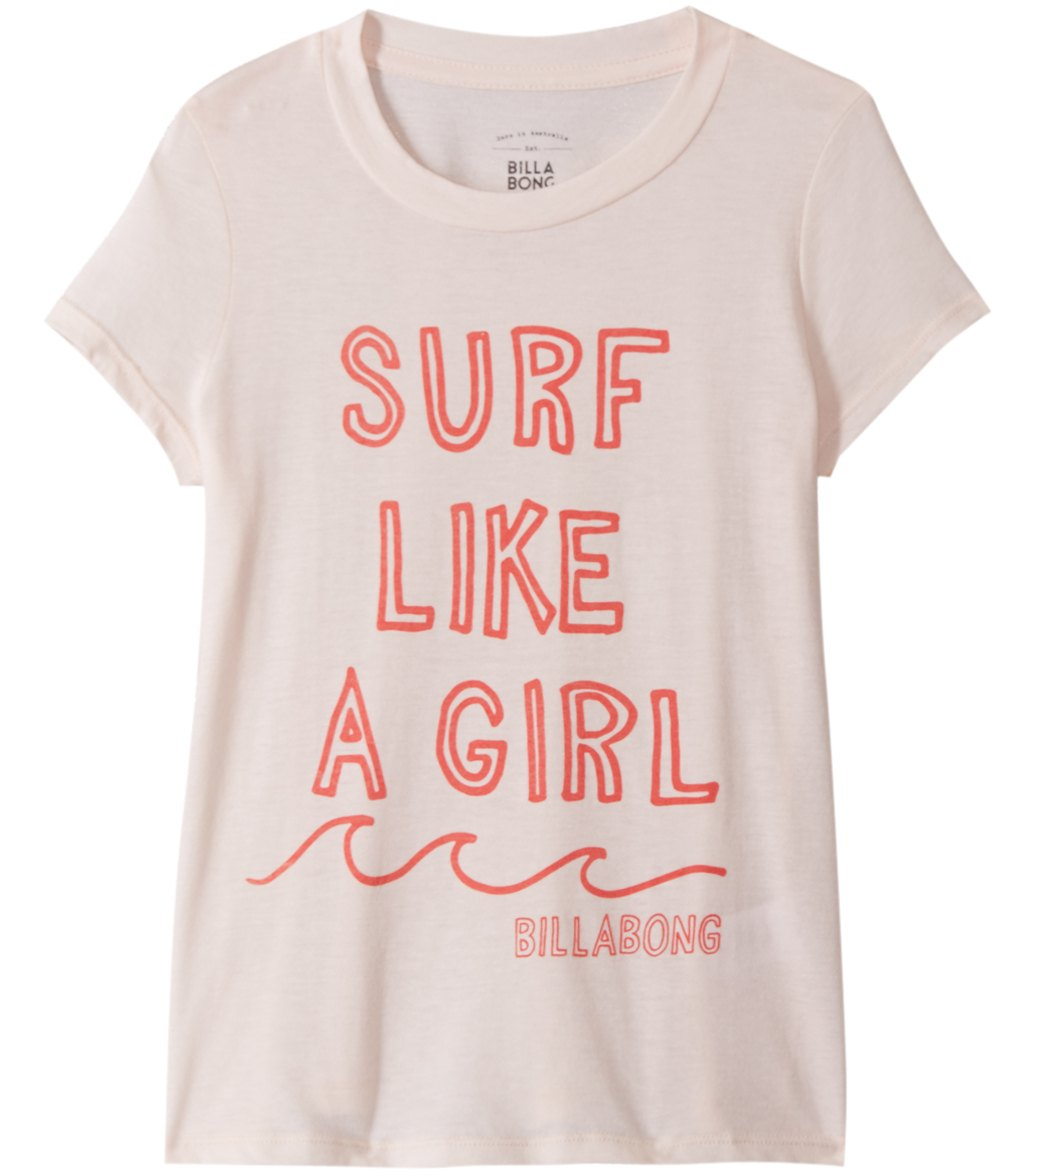 4cce8412fa Billabong Girls' Surf Like a Girl Tee Shirt (Little Kid, Big Kid) at  SwimOutlet.com - Free Shipping